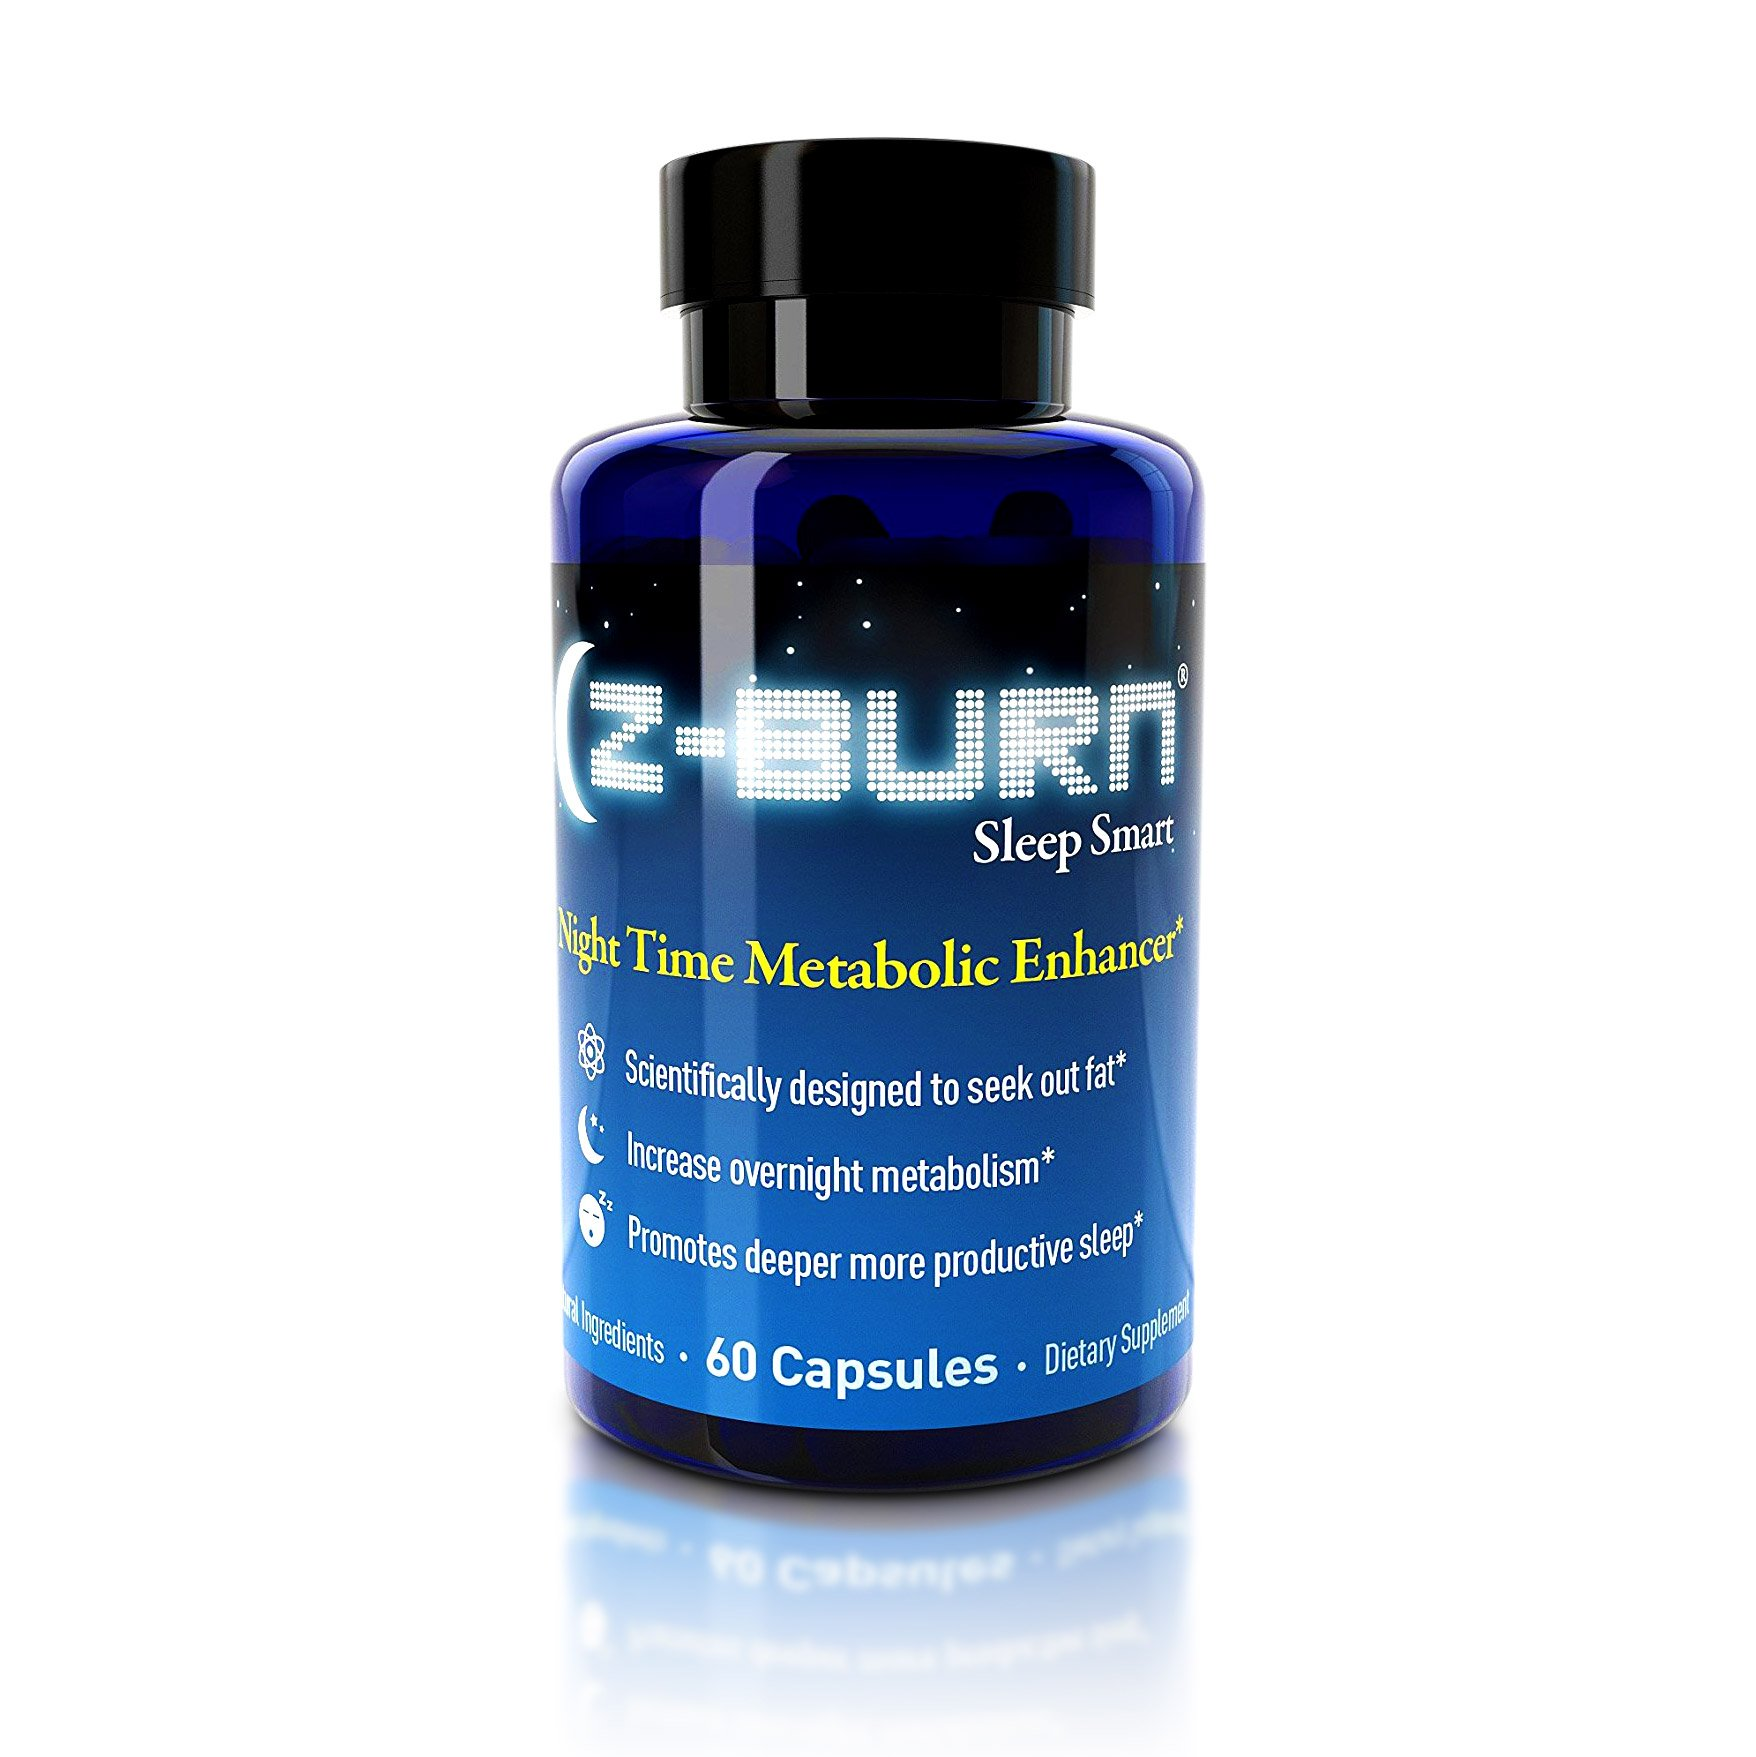 """Z-burn -- 60 Veggie Capsules -- Night Time Fat Loss Supplement - """"Sleep Great, Lose Weight!"""" Guaranteed Results - Made with 100% NON-GMO Natural and Organic Ingredients and Gluten Free"""